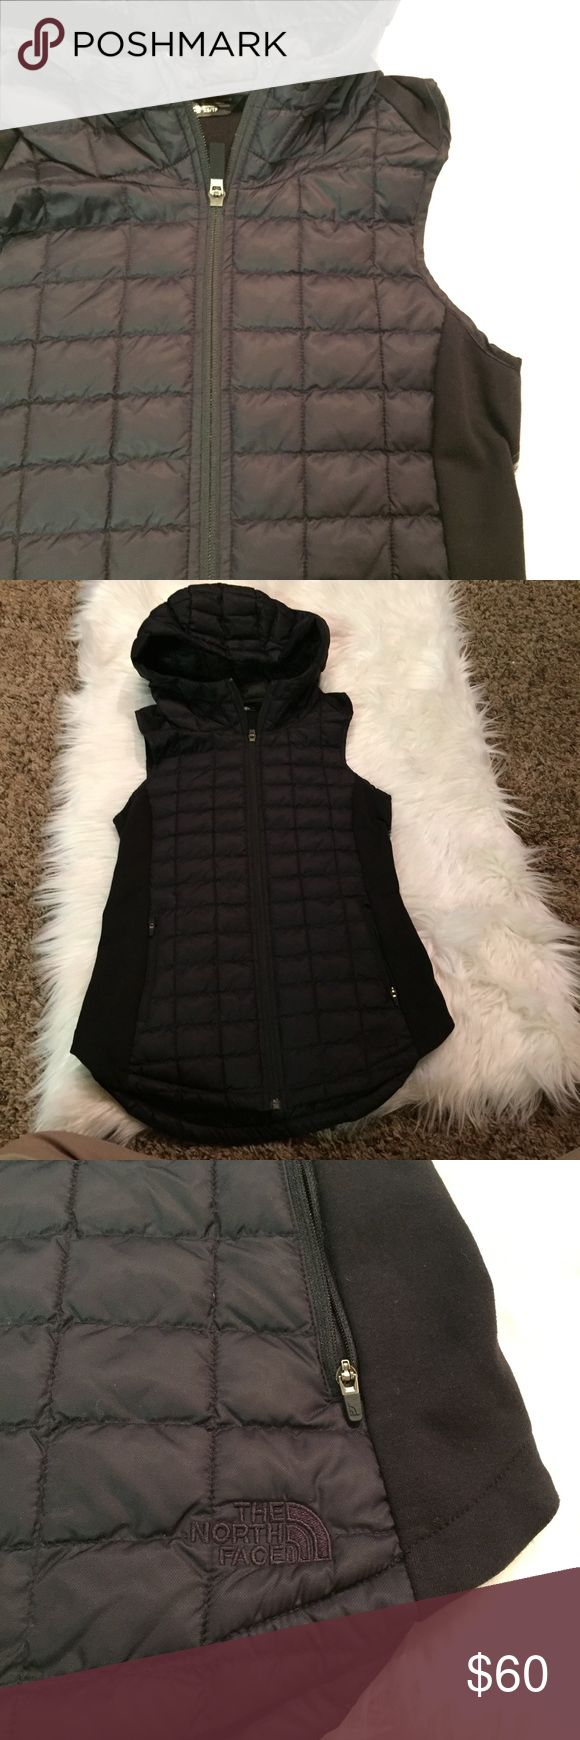 NWOT The North Face Thermoball hooded vest Brand new without tags. Perfect condition. The North Face Thermoball black hooded vest, size XS. Keeps you warm even when wet. The North Face Jackets & Coats Vests